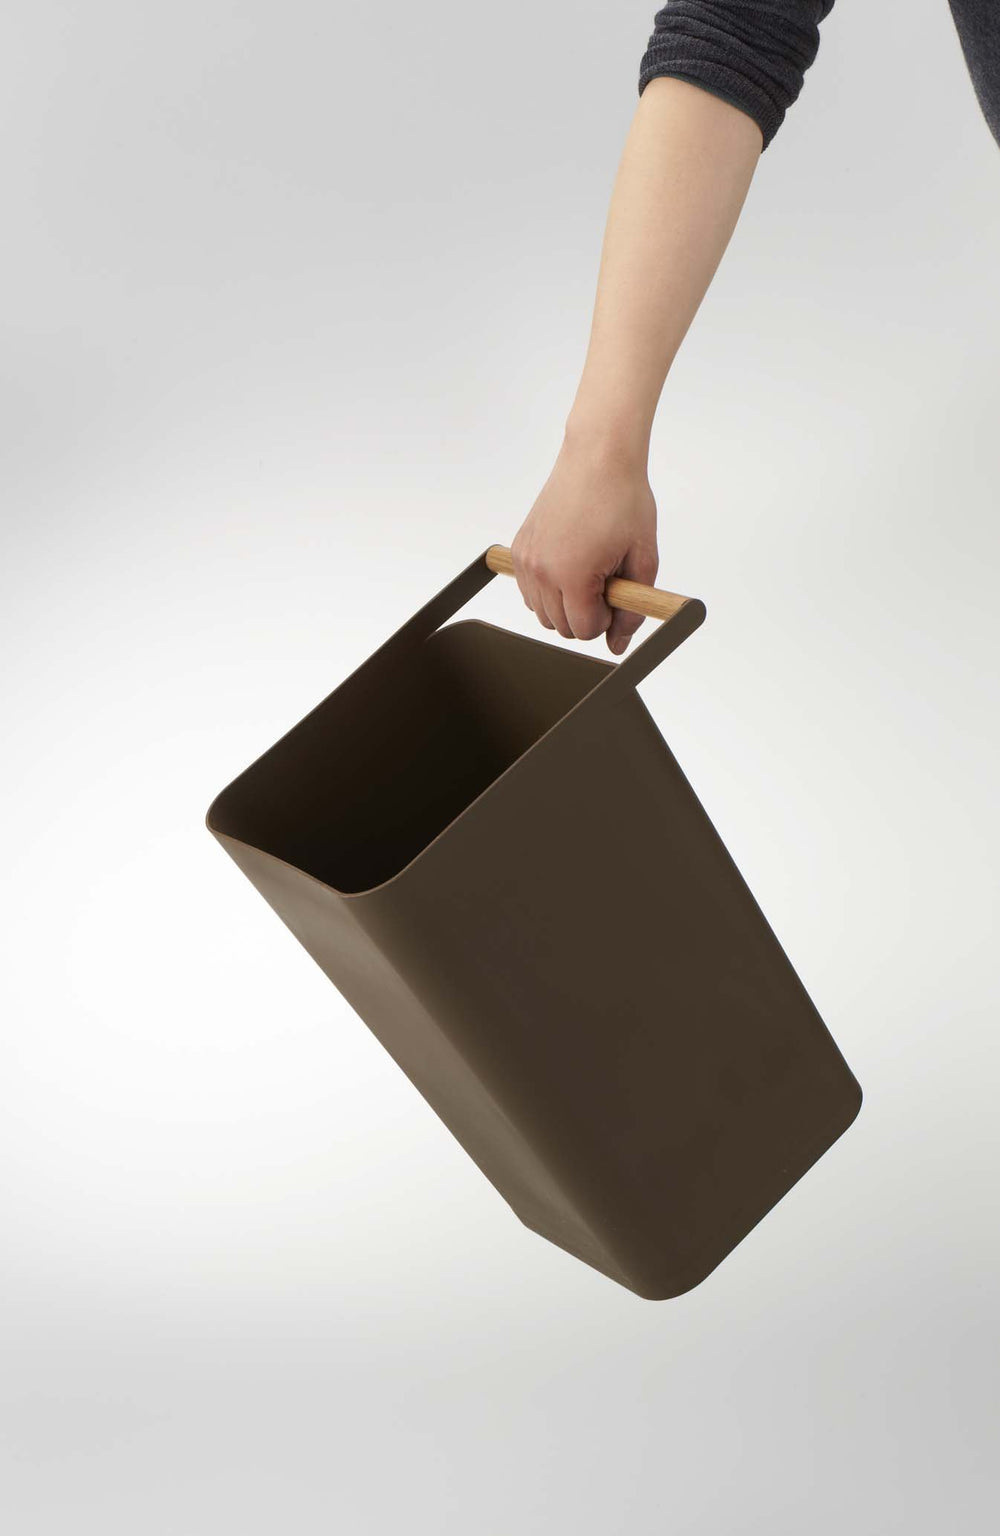 Someone carrying the Yamazaki wastebasket by the wooden handle.